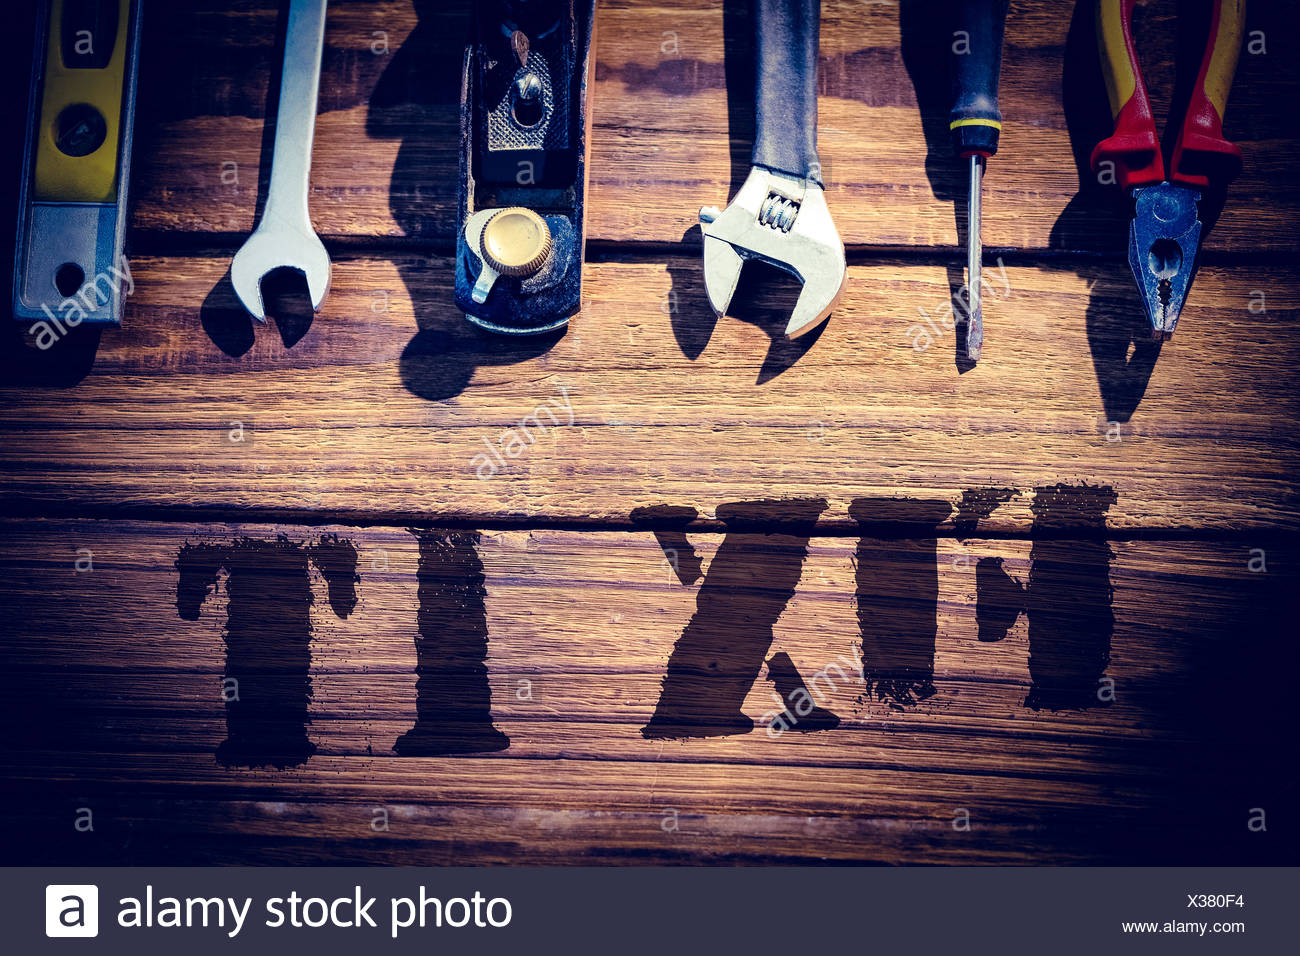 Fix it against desk with tools - Stock Image